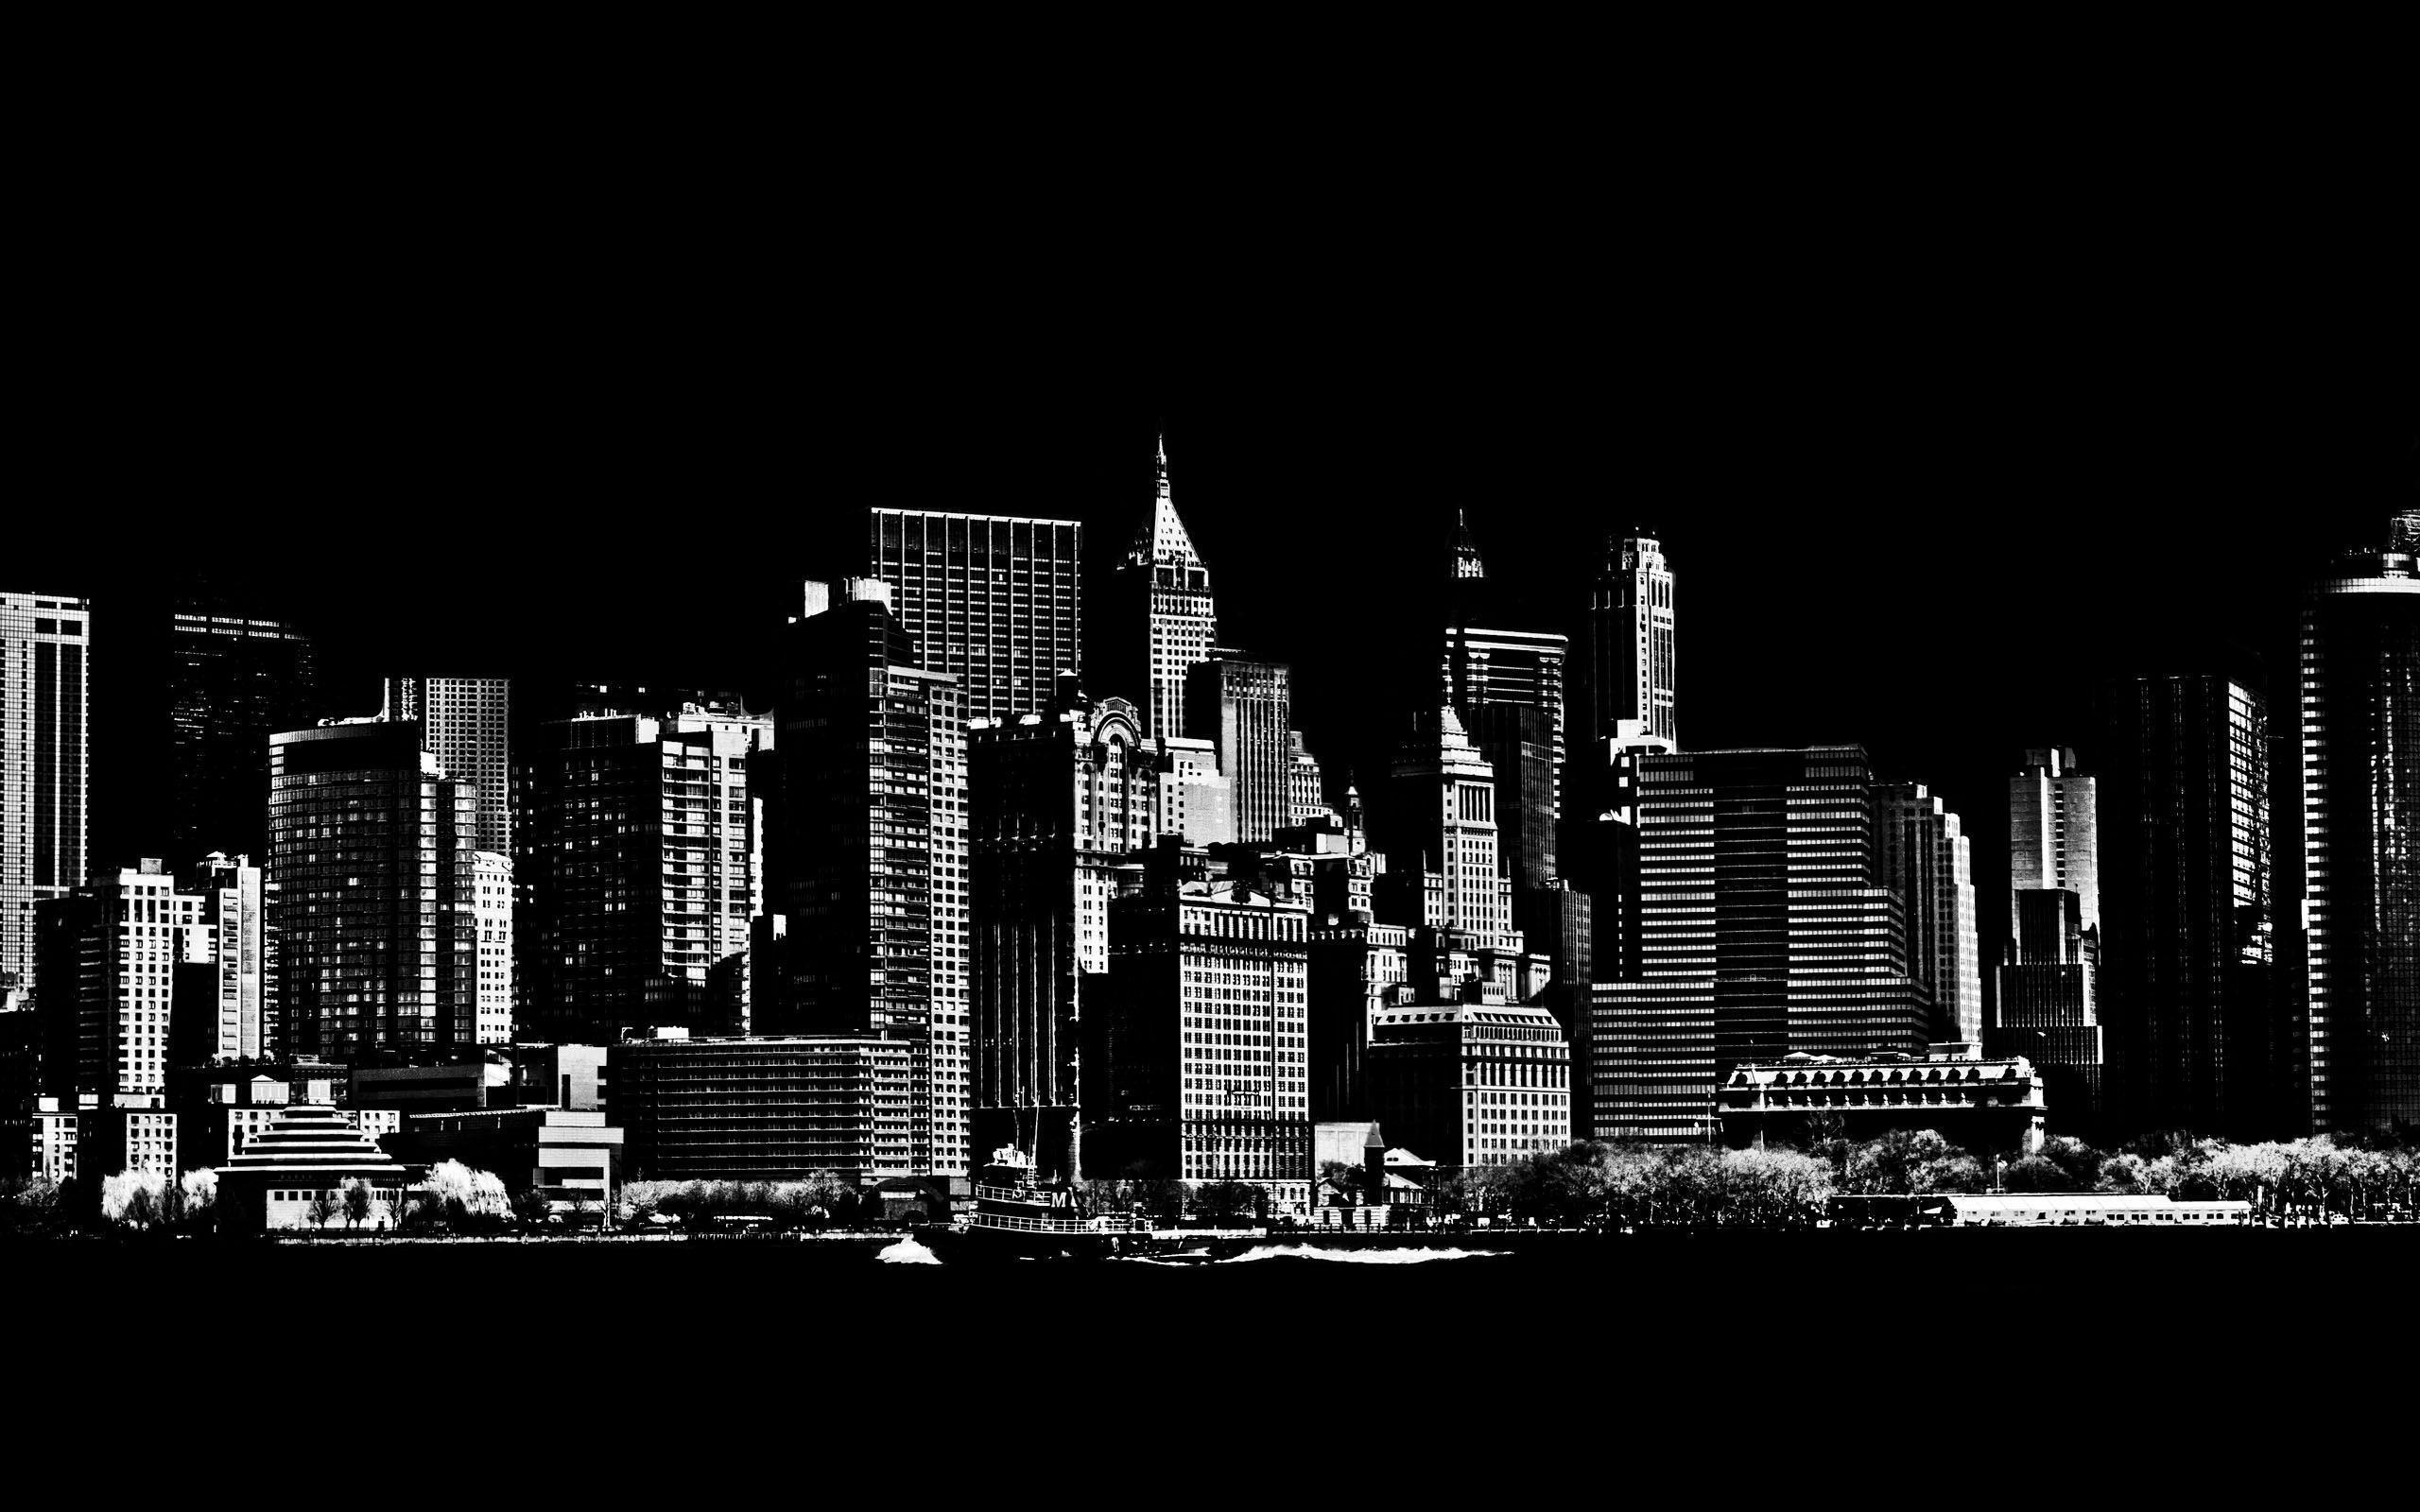 New york city image wallpapers wallpaper cave for Black and white new york mural wallpaper